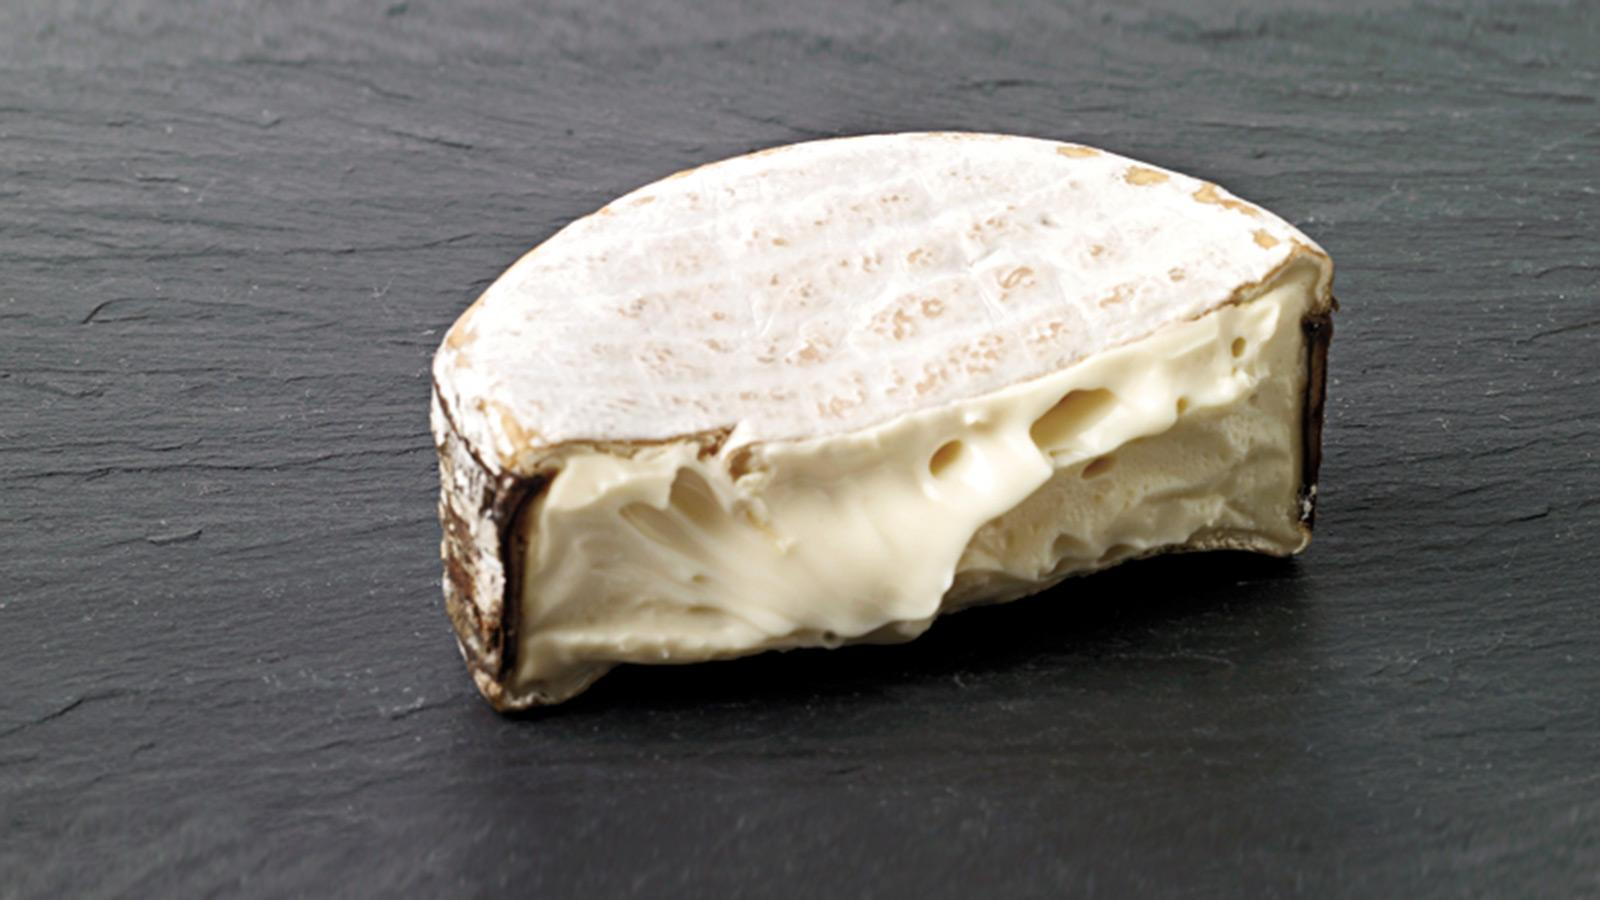 Some of the most acclaimed stinky, runny cheeses made in the U.S. come from Jasper Hill Farm.